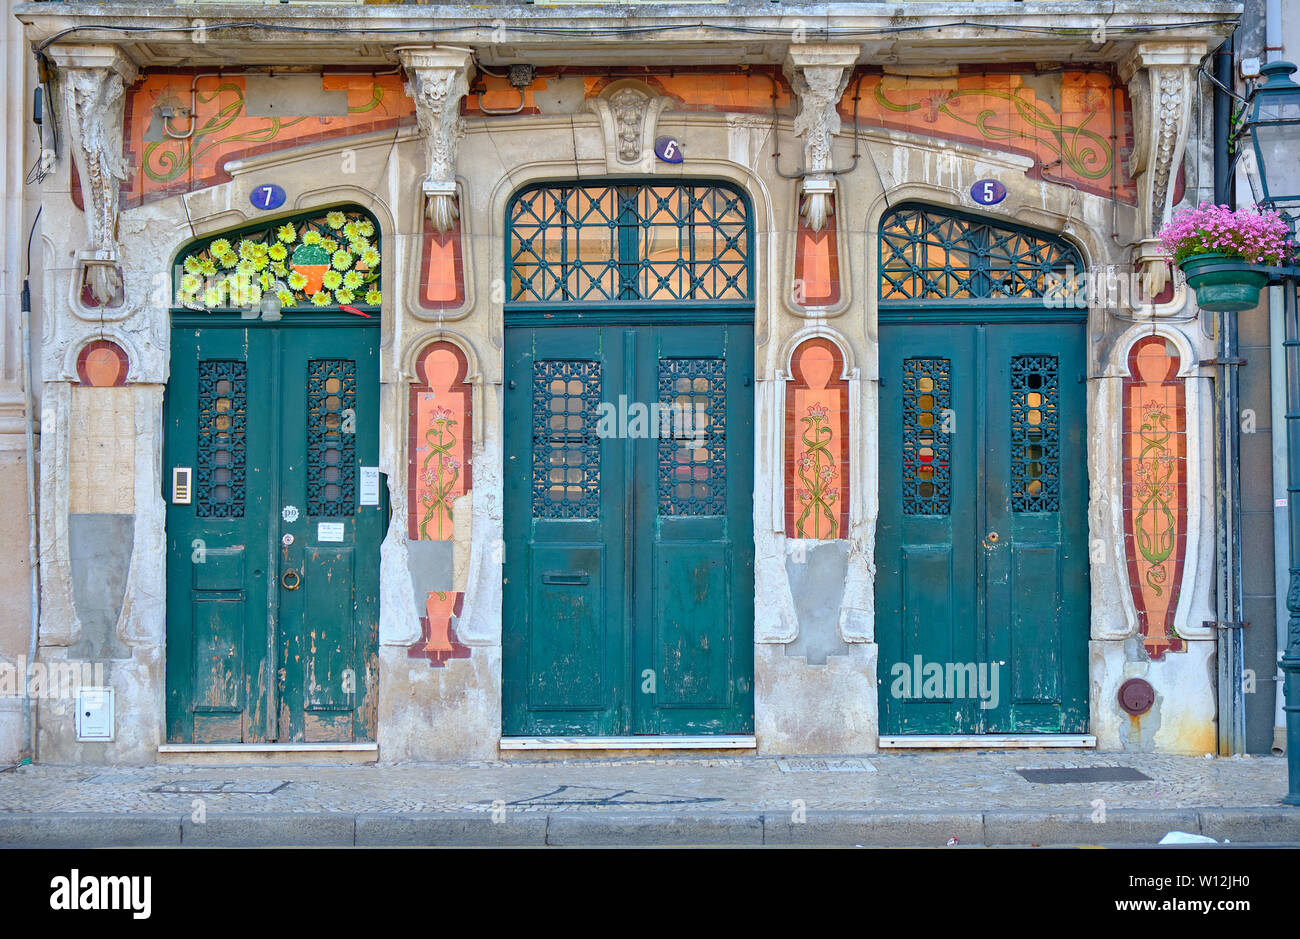 old-vintage-building-facade-in-art-nouveau-design-with-major-part-broken-and-crumbling-aveiro-portugal-W12JH0.jpg